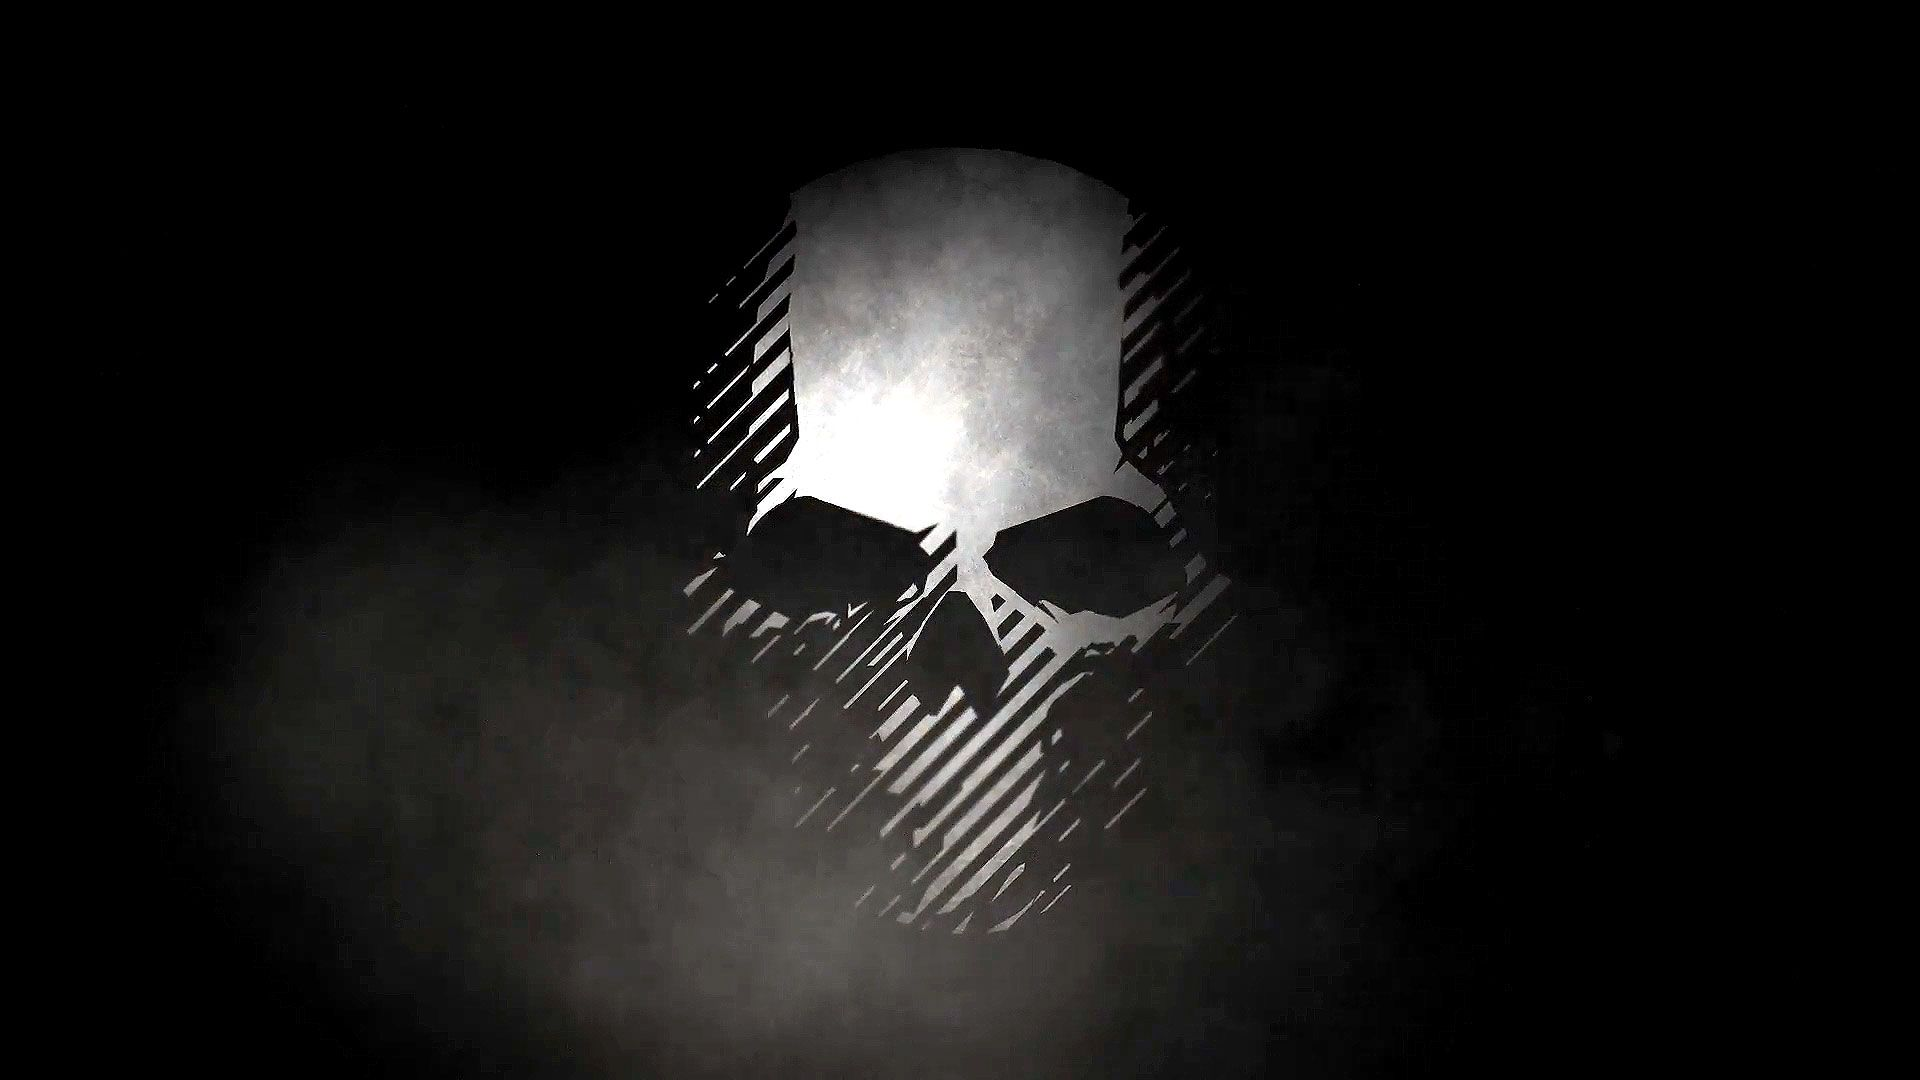 wallpaper of skull